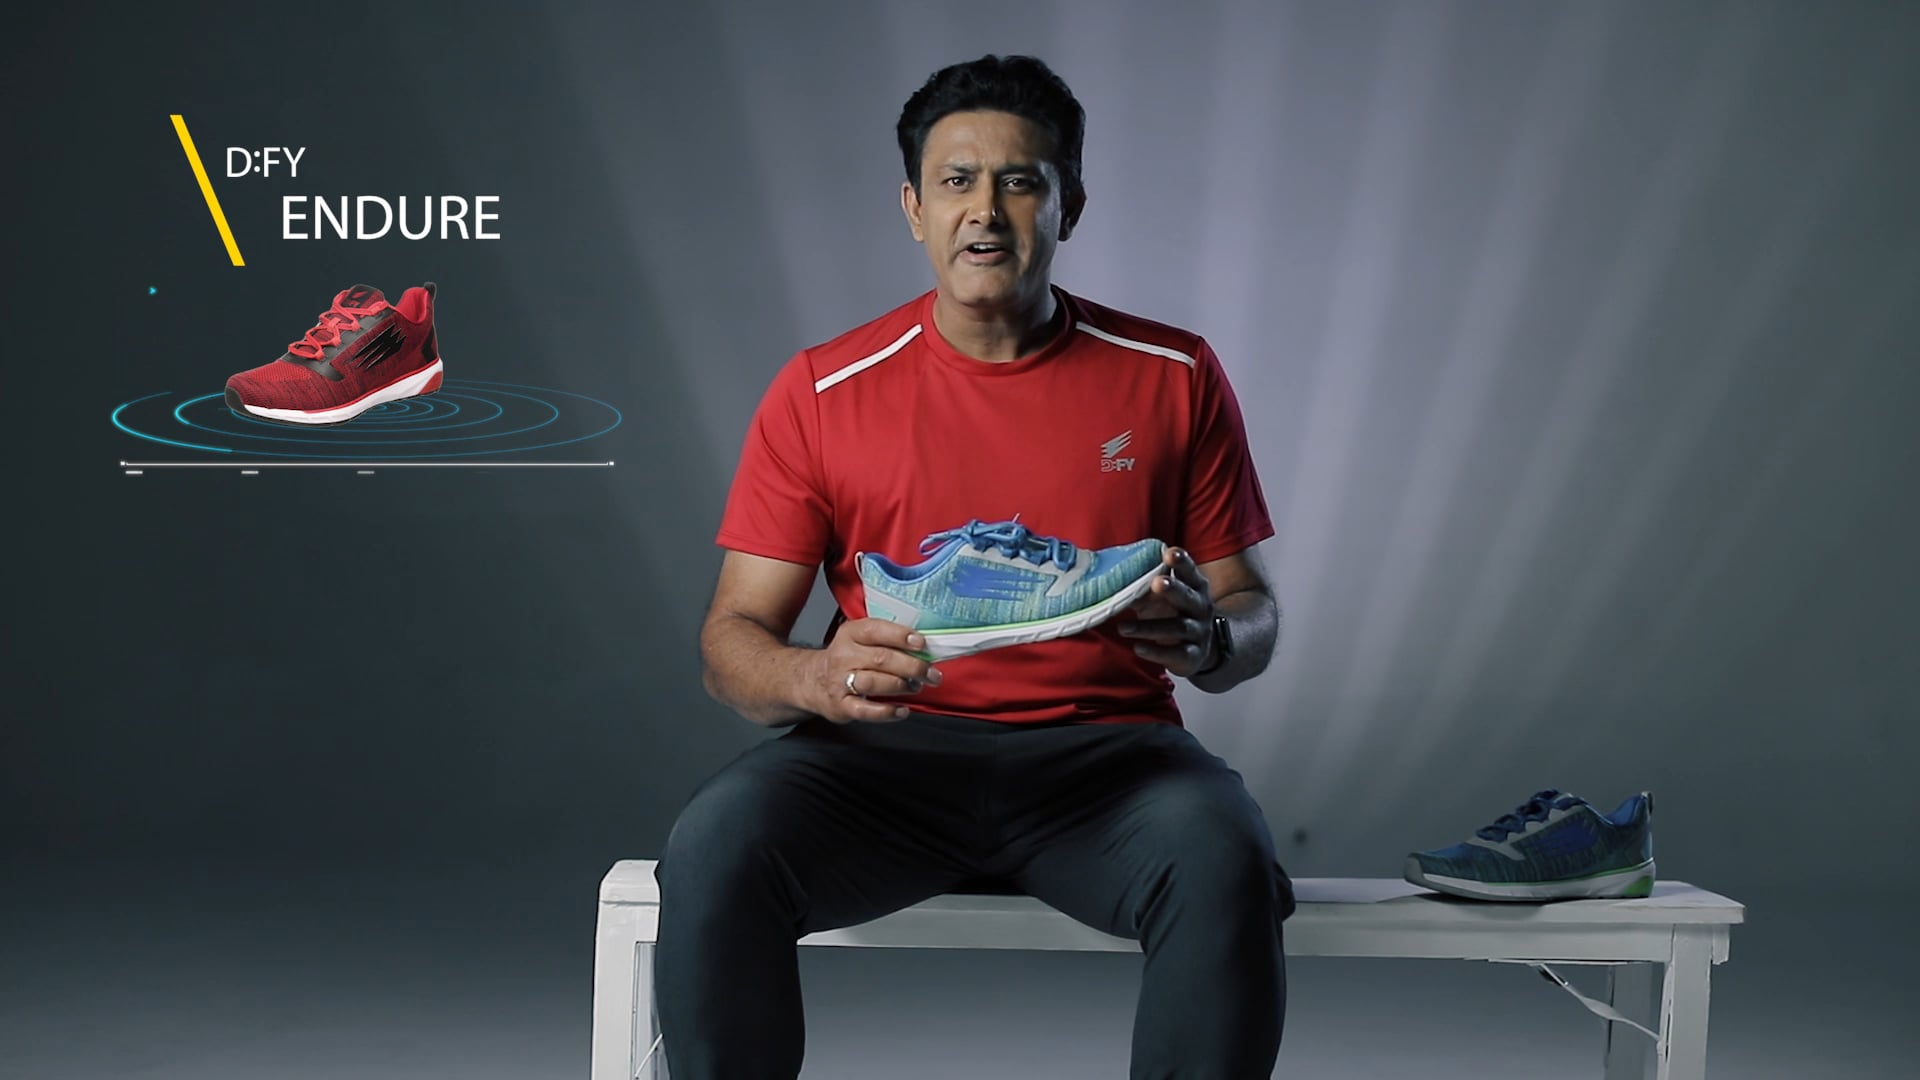 DFY Product Film Featuring Anil Kumble